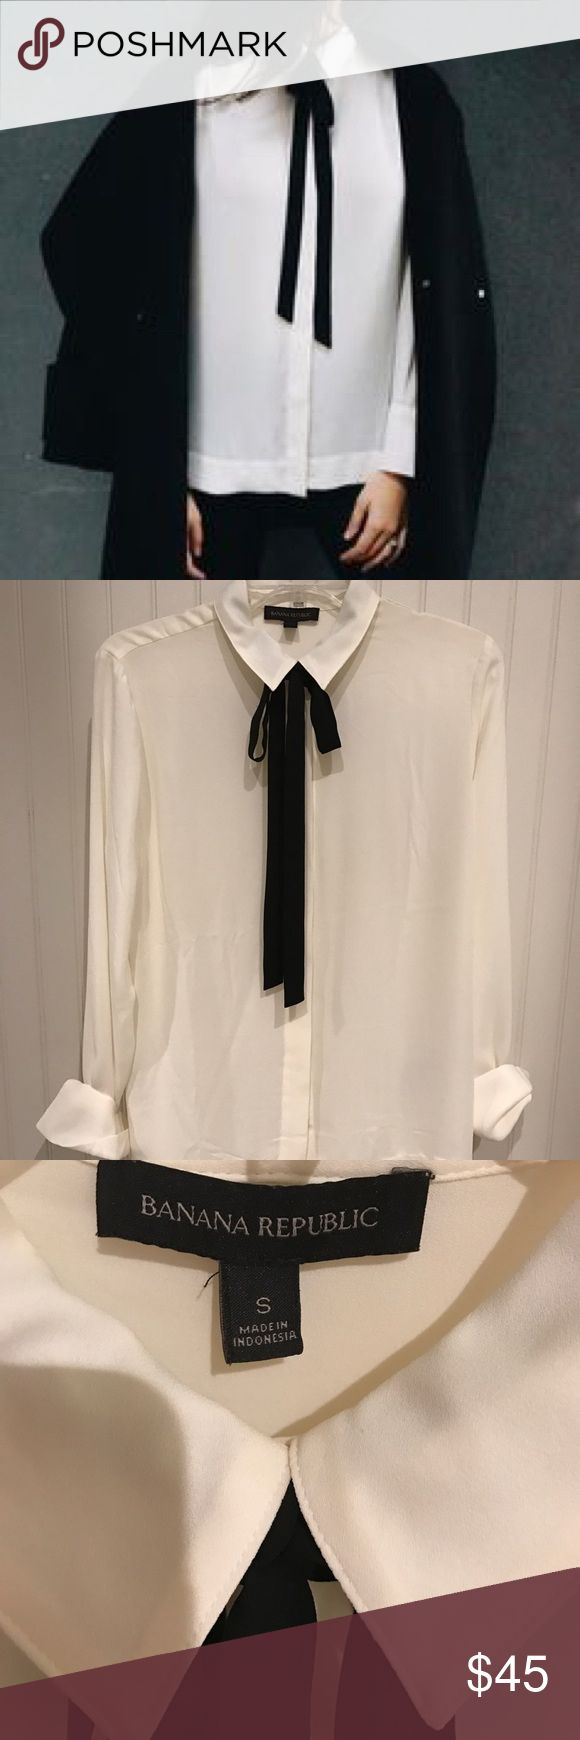 Banana Republic Contrast Tie Front Blouse Beautiful white button up blouse with black necktie. The tie can be removed with a button at the back of the neck, under the collar. Slits at the side and a slight hi-low hem. Worn once. Perfect condition! Size small. Banana Republic Tops Blouses